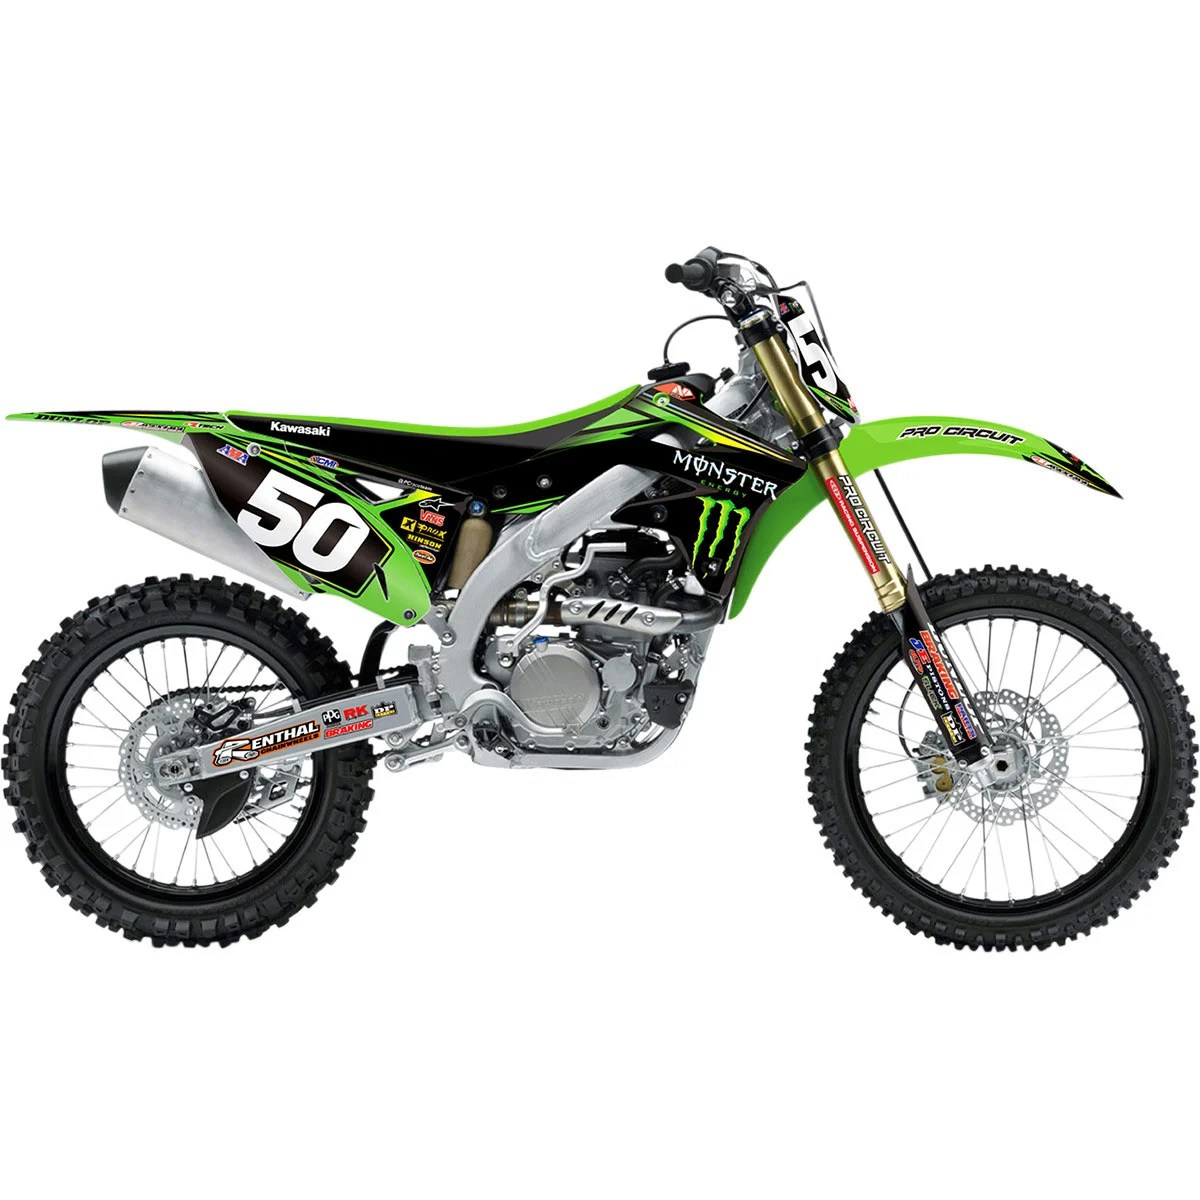 n style race team graphic kit for kx250 03 08